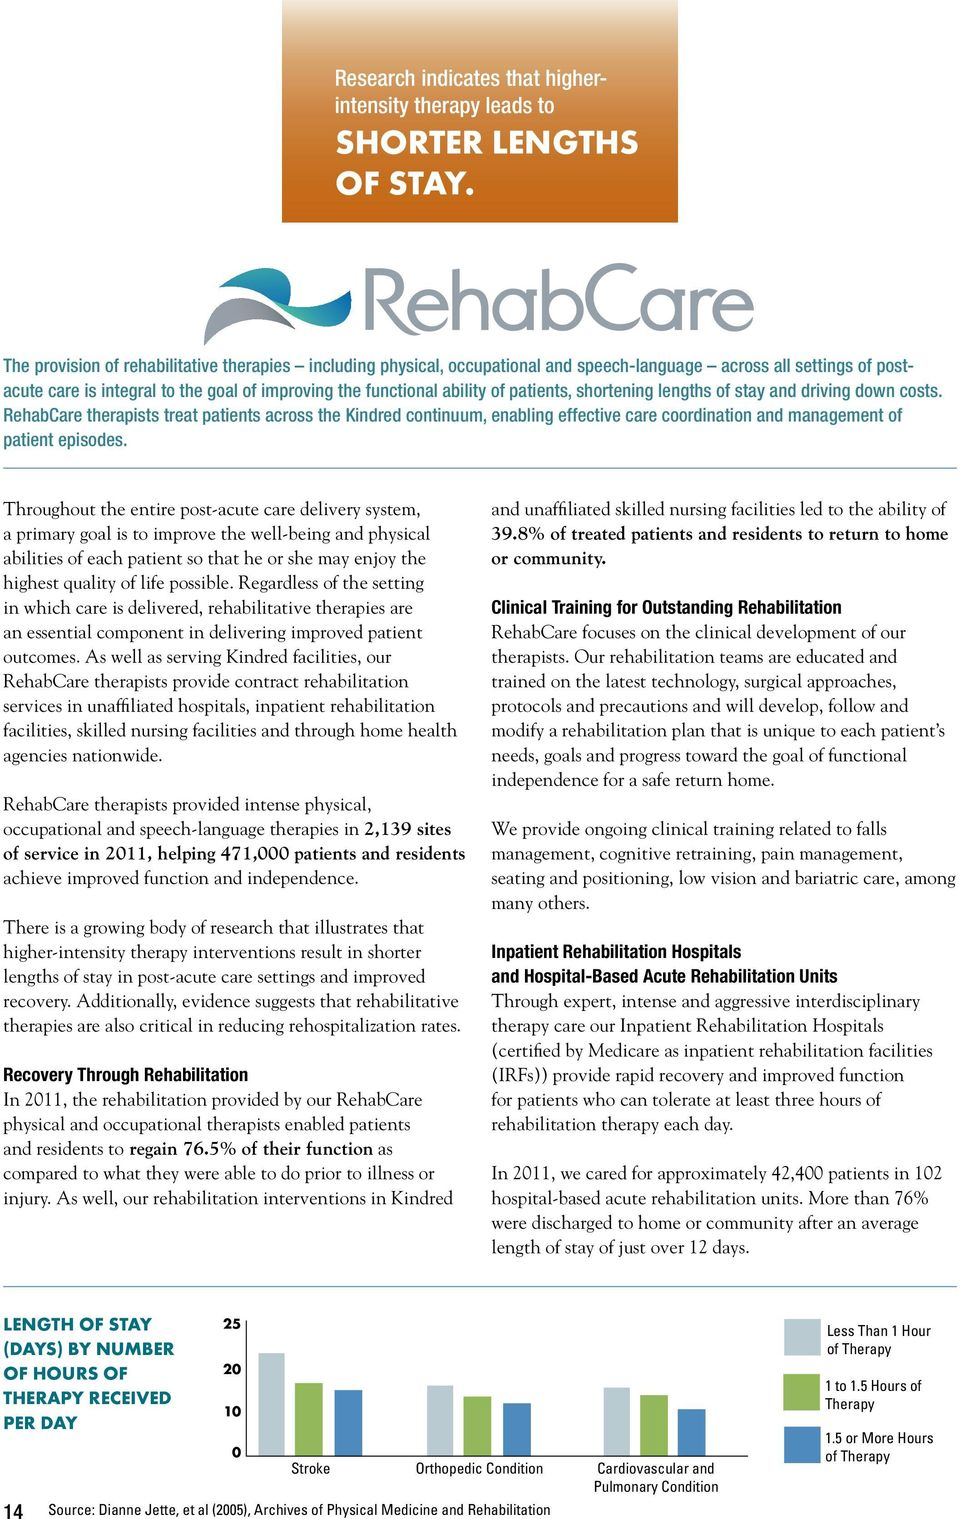 patients, shortening lengths of stay and driving down costs. RehabCare therapists treat patients across the Kindred continuum, enabling effective care coordination and management of patient episodes.